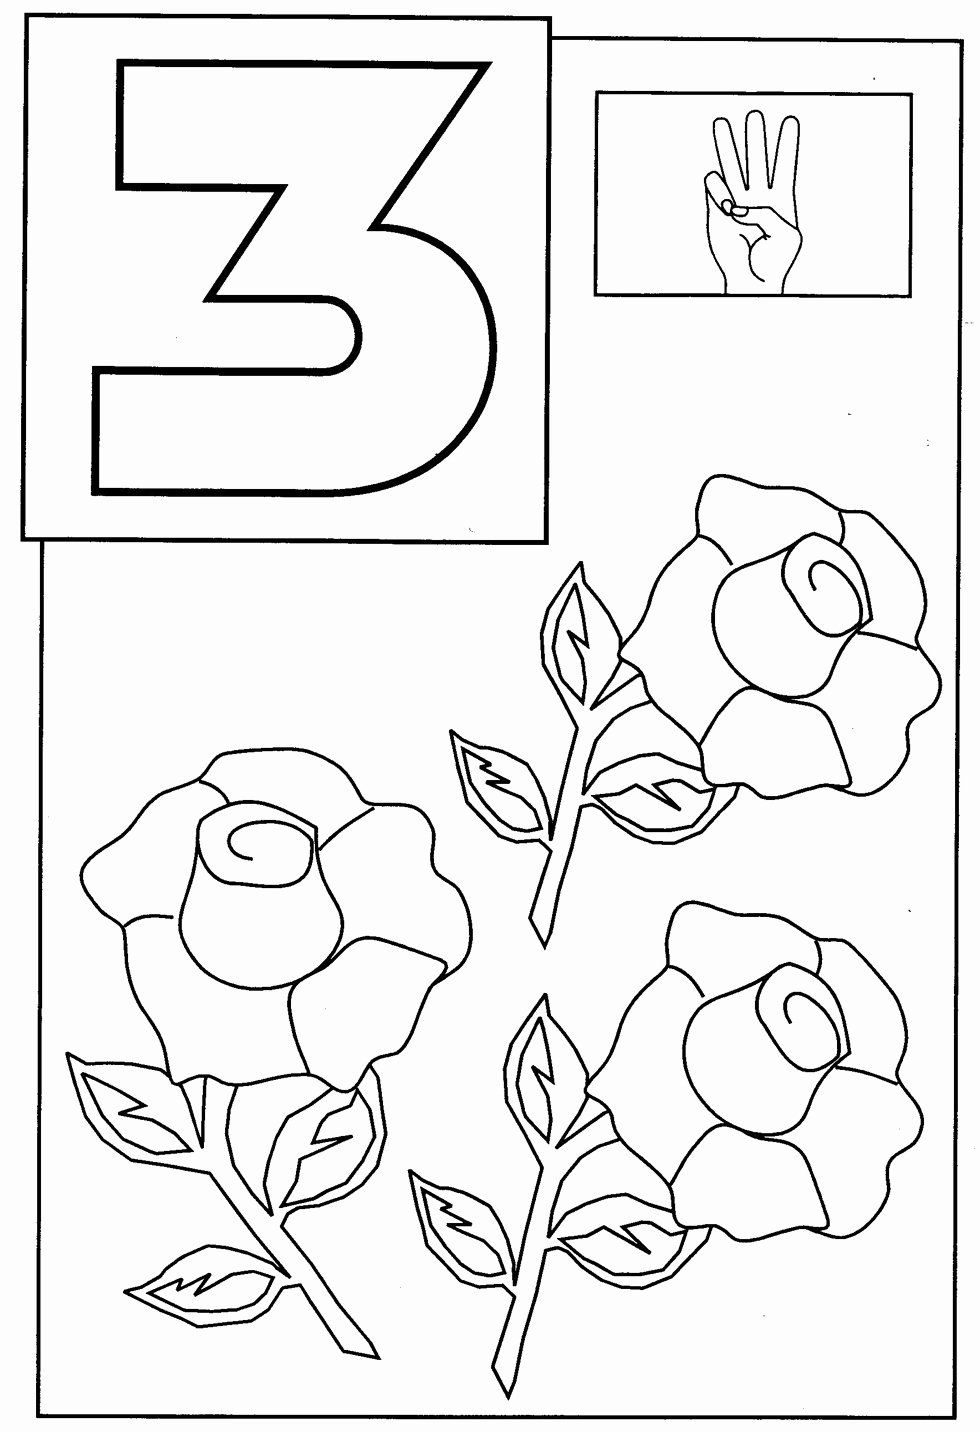 Pin On Popular Number Drawing Pages